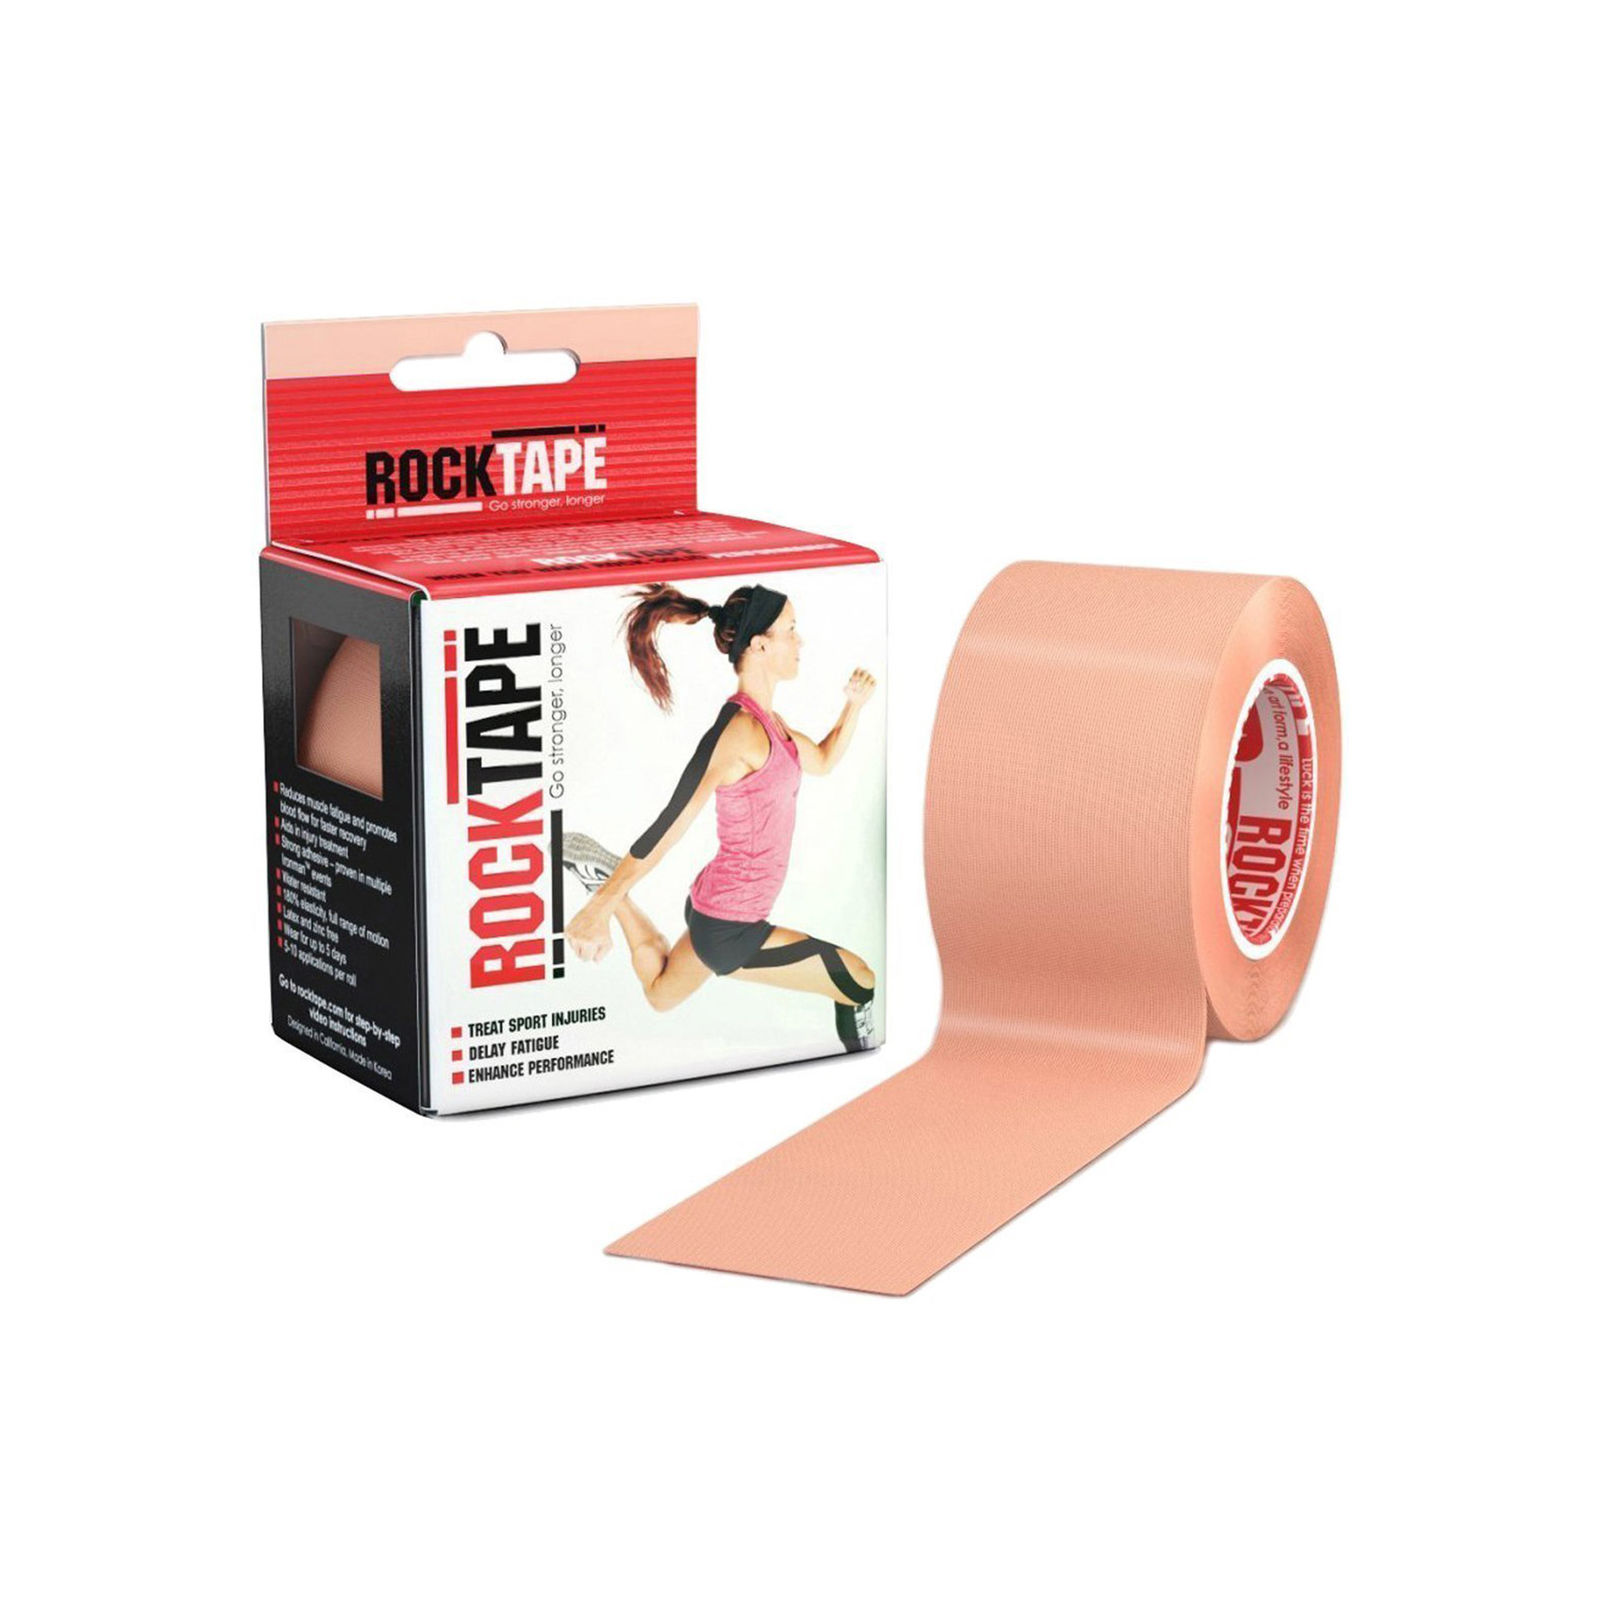 Rocktape Kinesiology Tape for Athletes - Reduce Pain and Injury Recovery